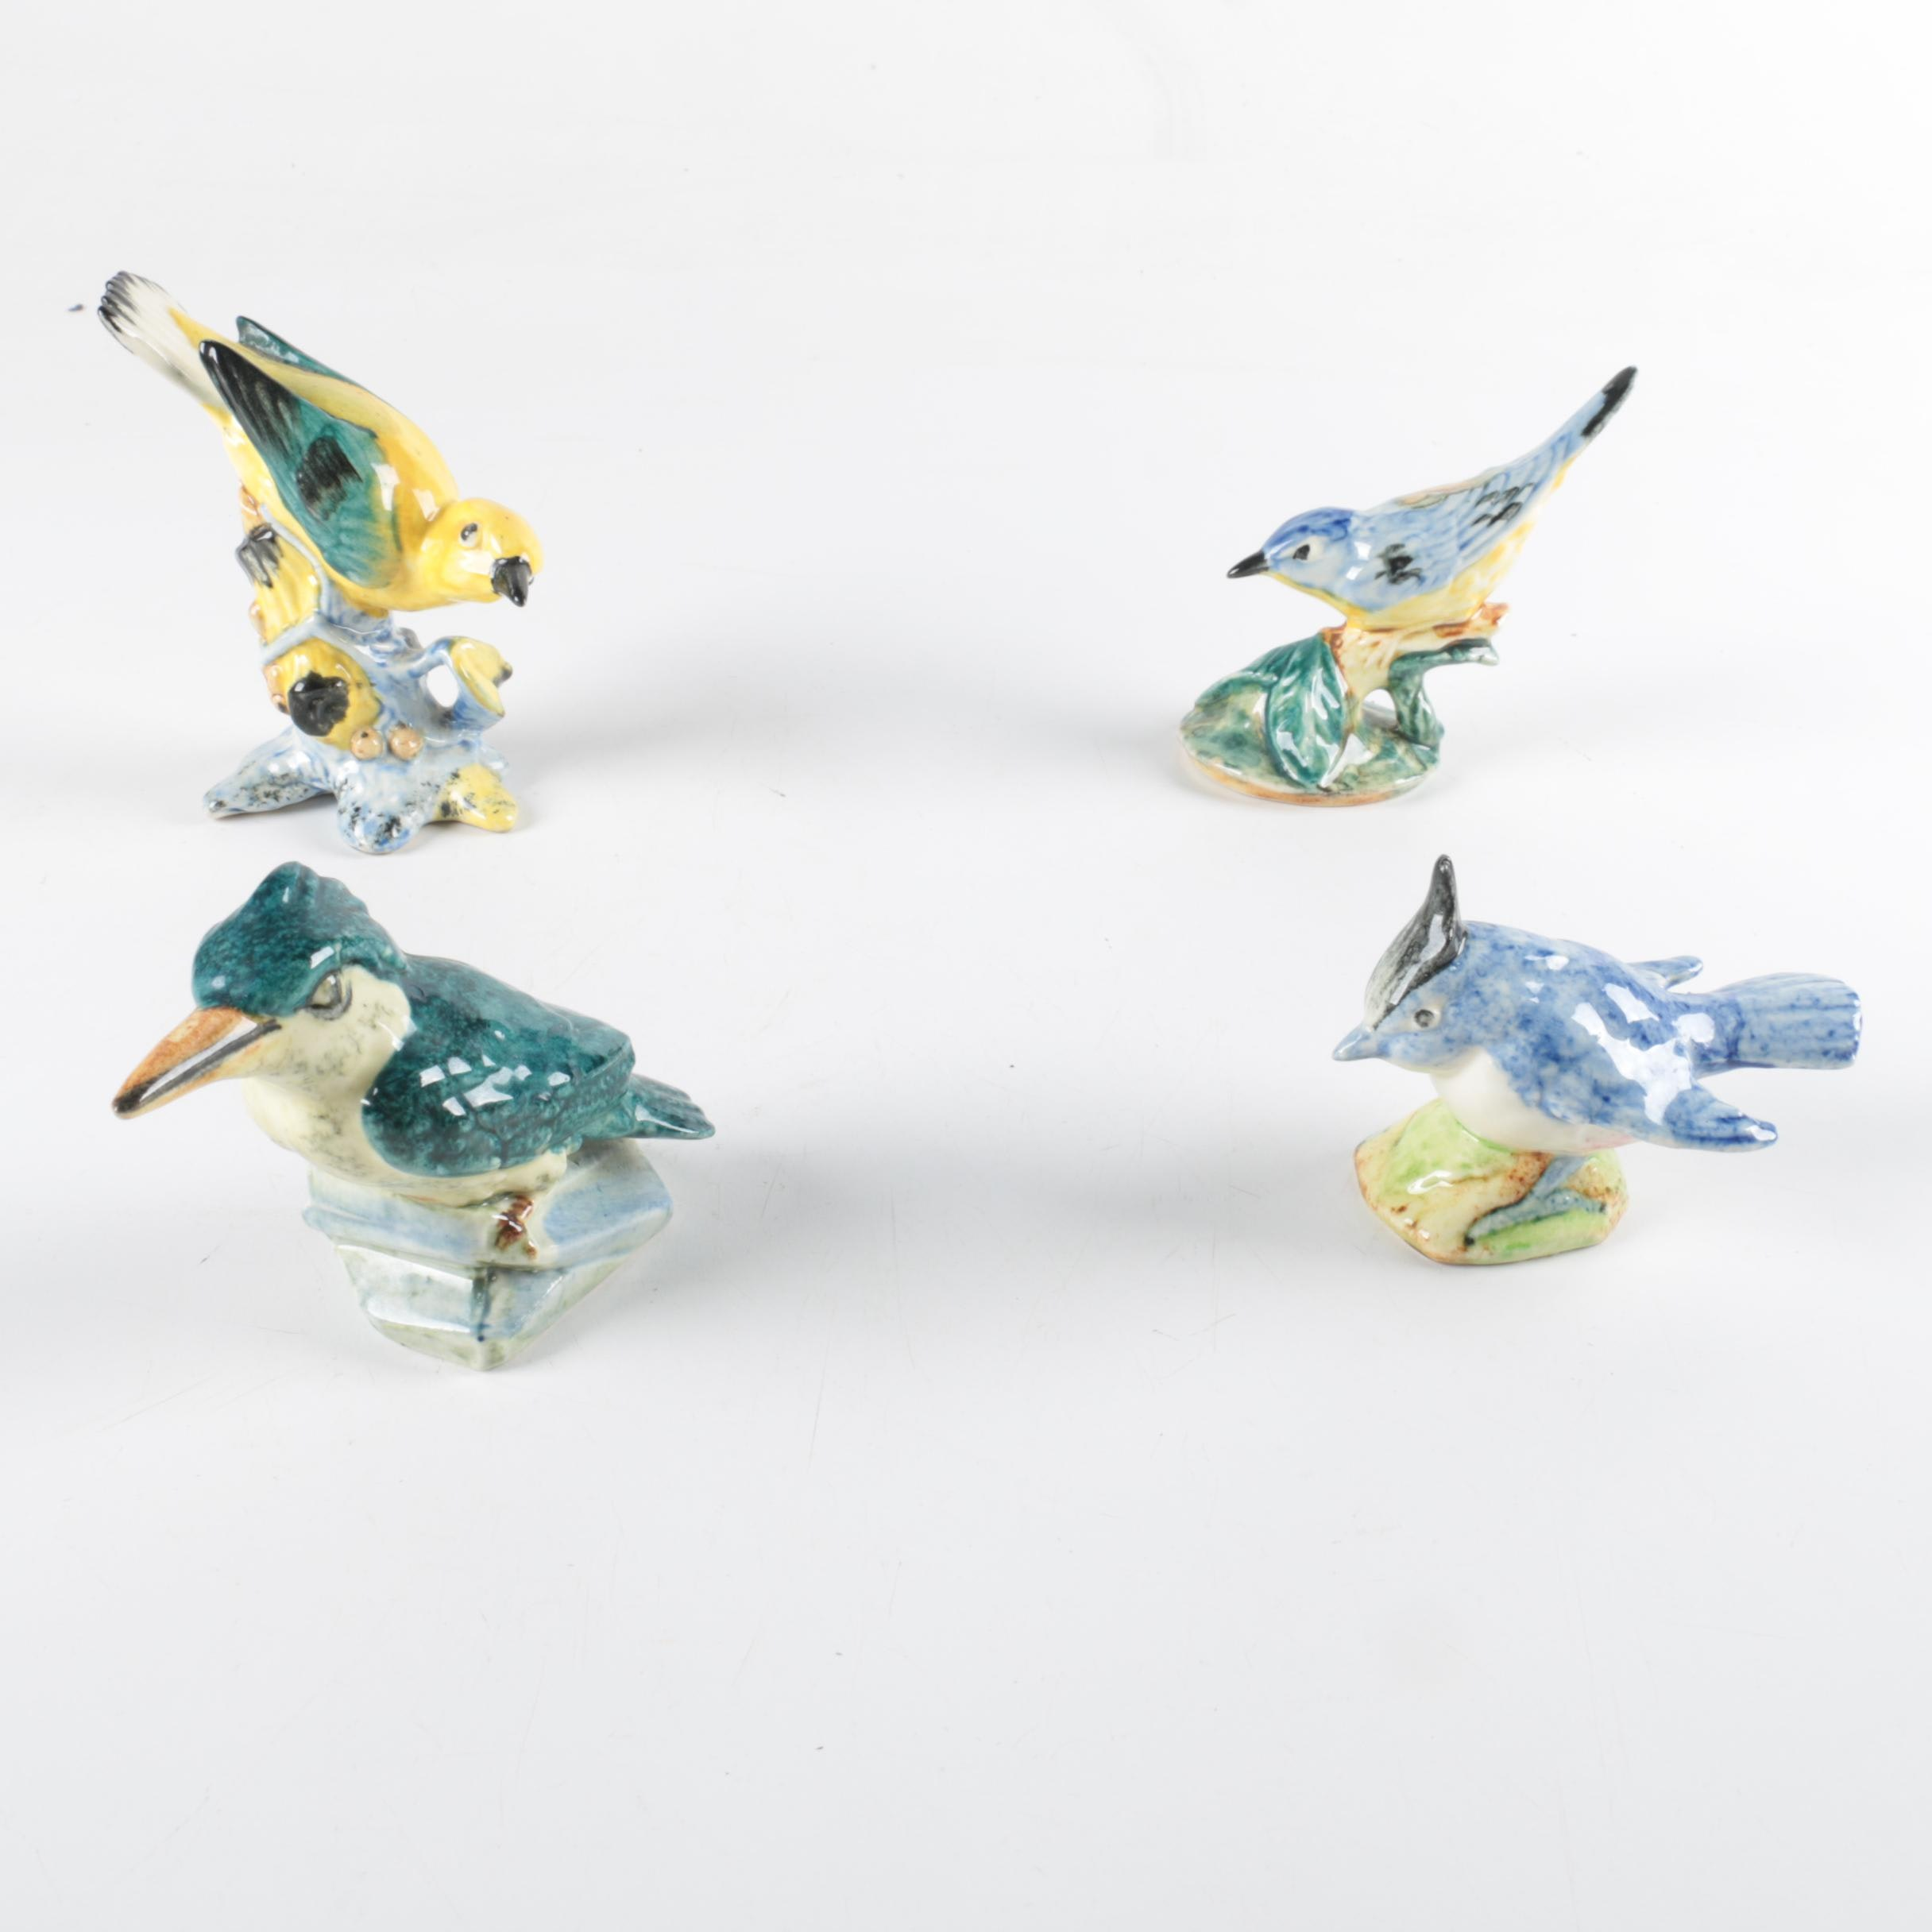 Colorful Ceramic Bird Figurines by Stangle and Others